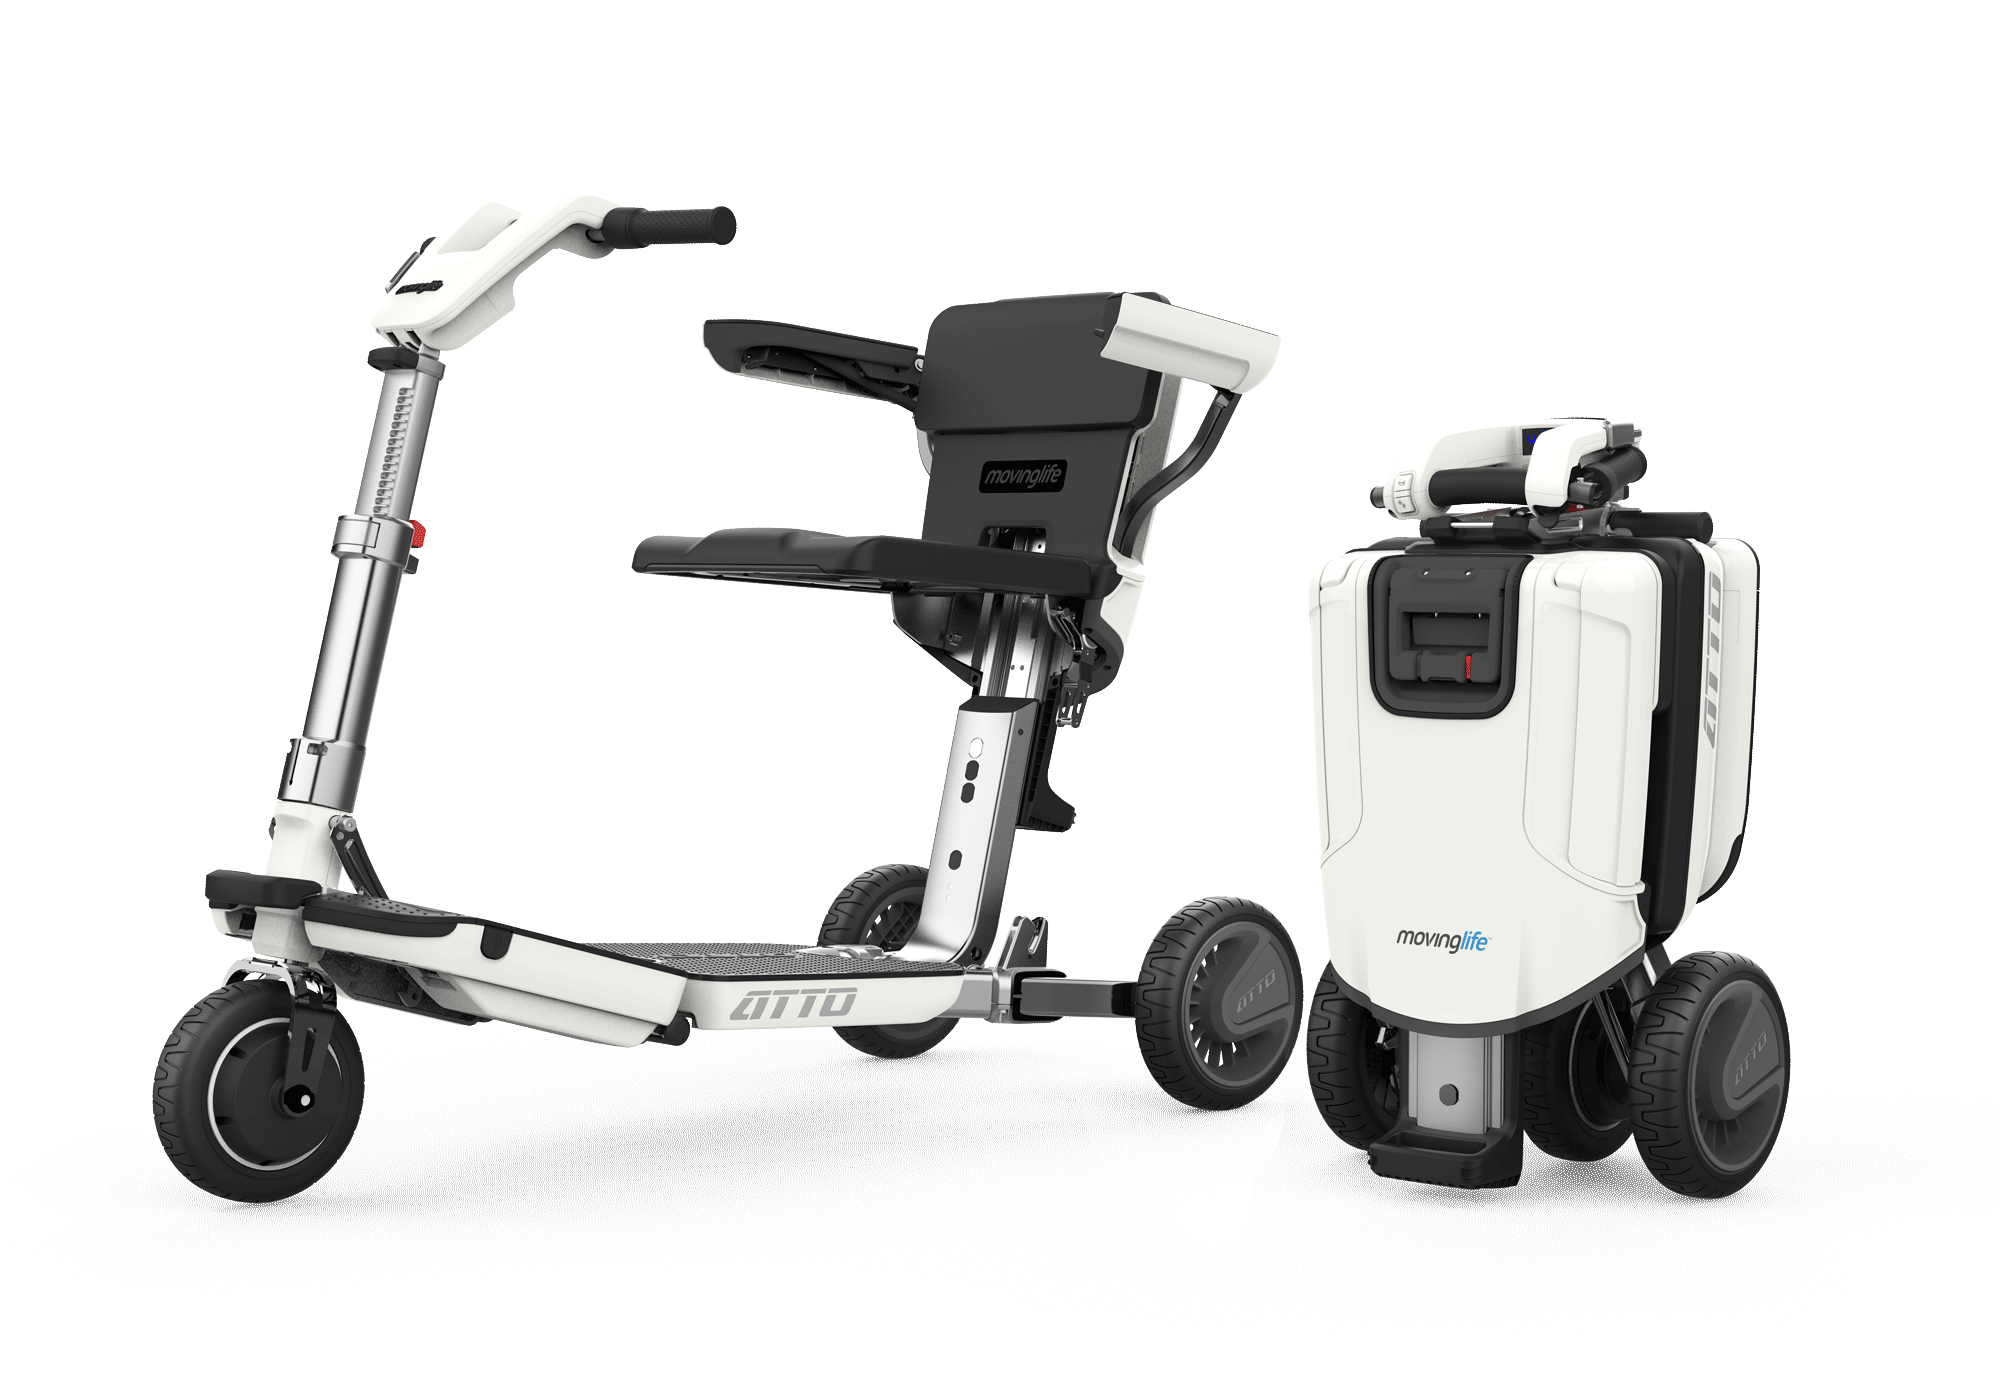 Unfolded and folded view of ATTO scooter.